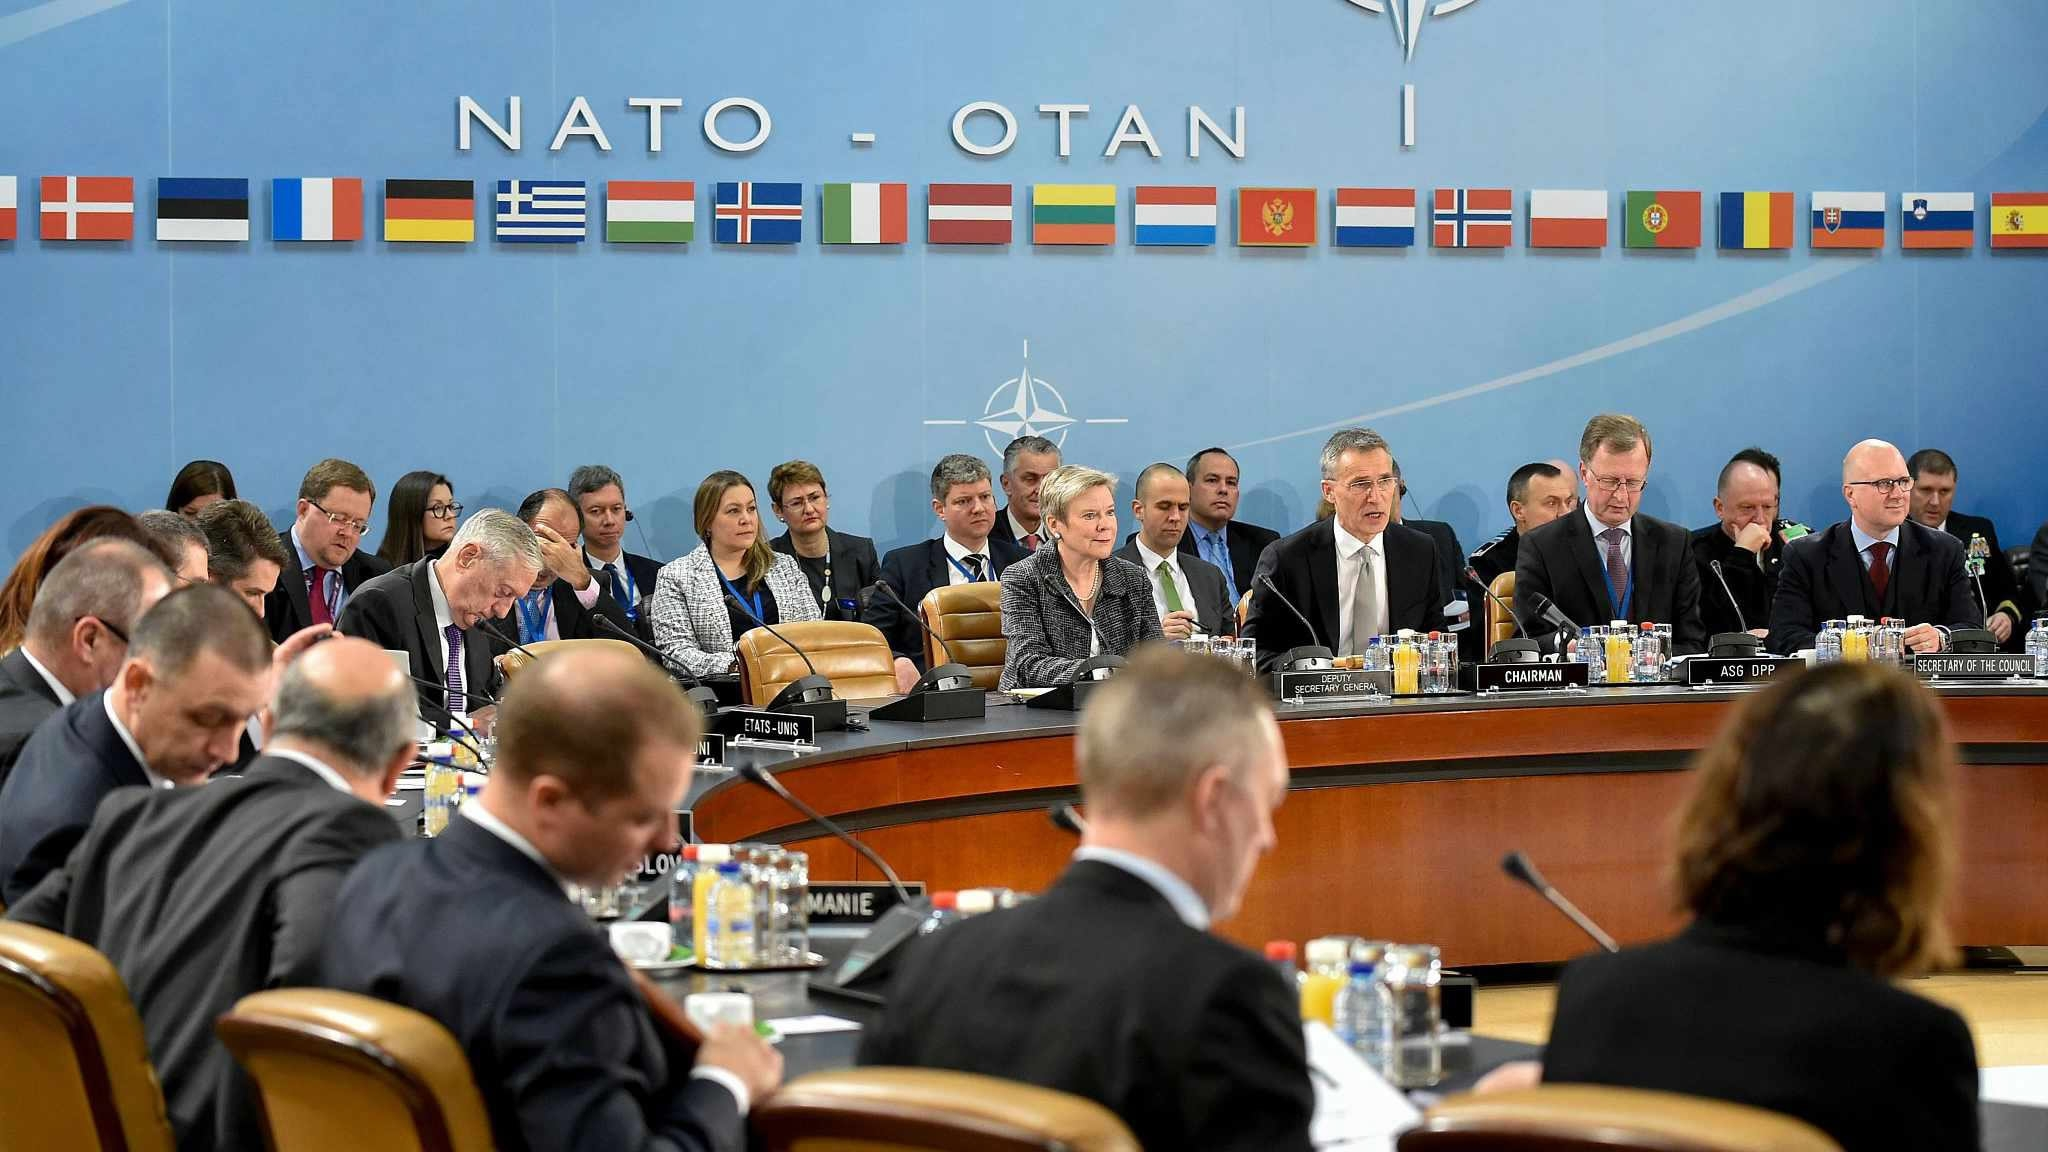 Rehashing Cold War cannot Band-Aid alliance